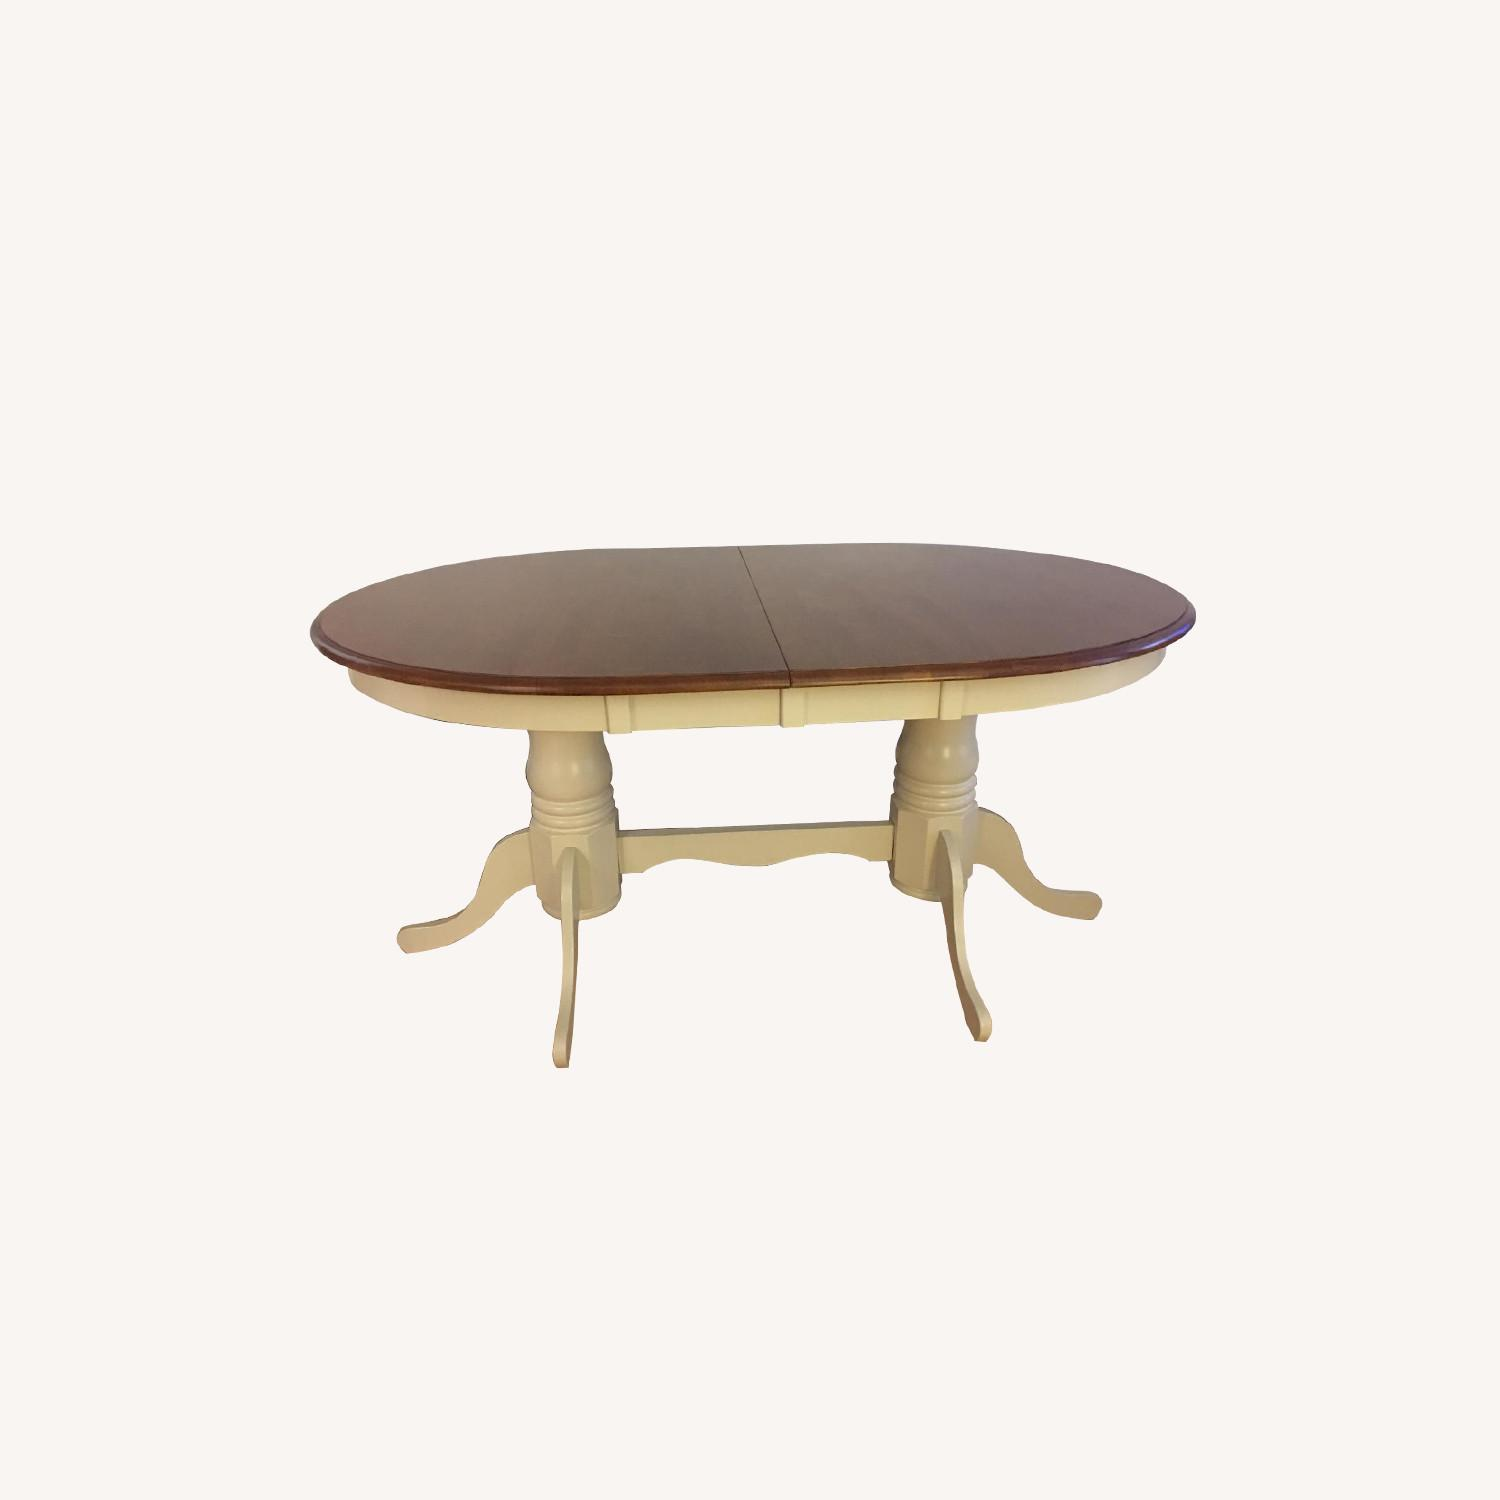 French Dining Table in Antique White/Chestnut - image-0